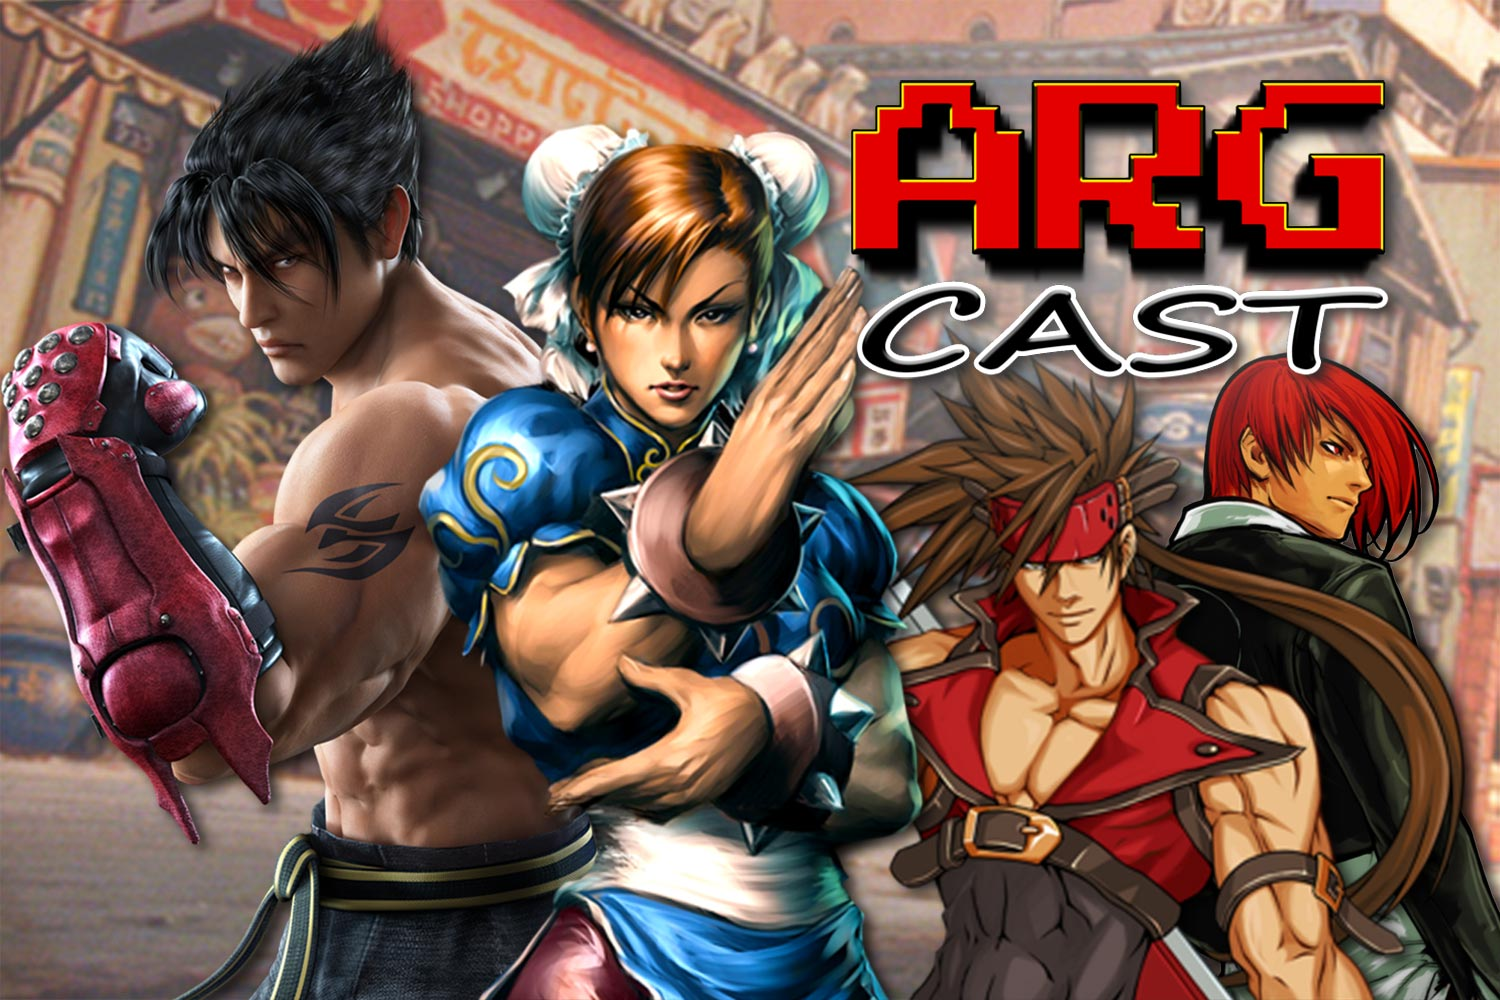 ARGcast #171: Retro Fighting Games w/ Ash Paulsen and Andre Tipton